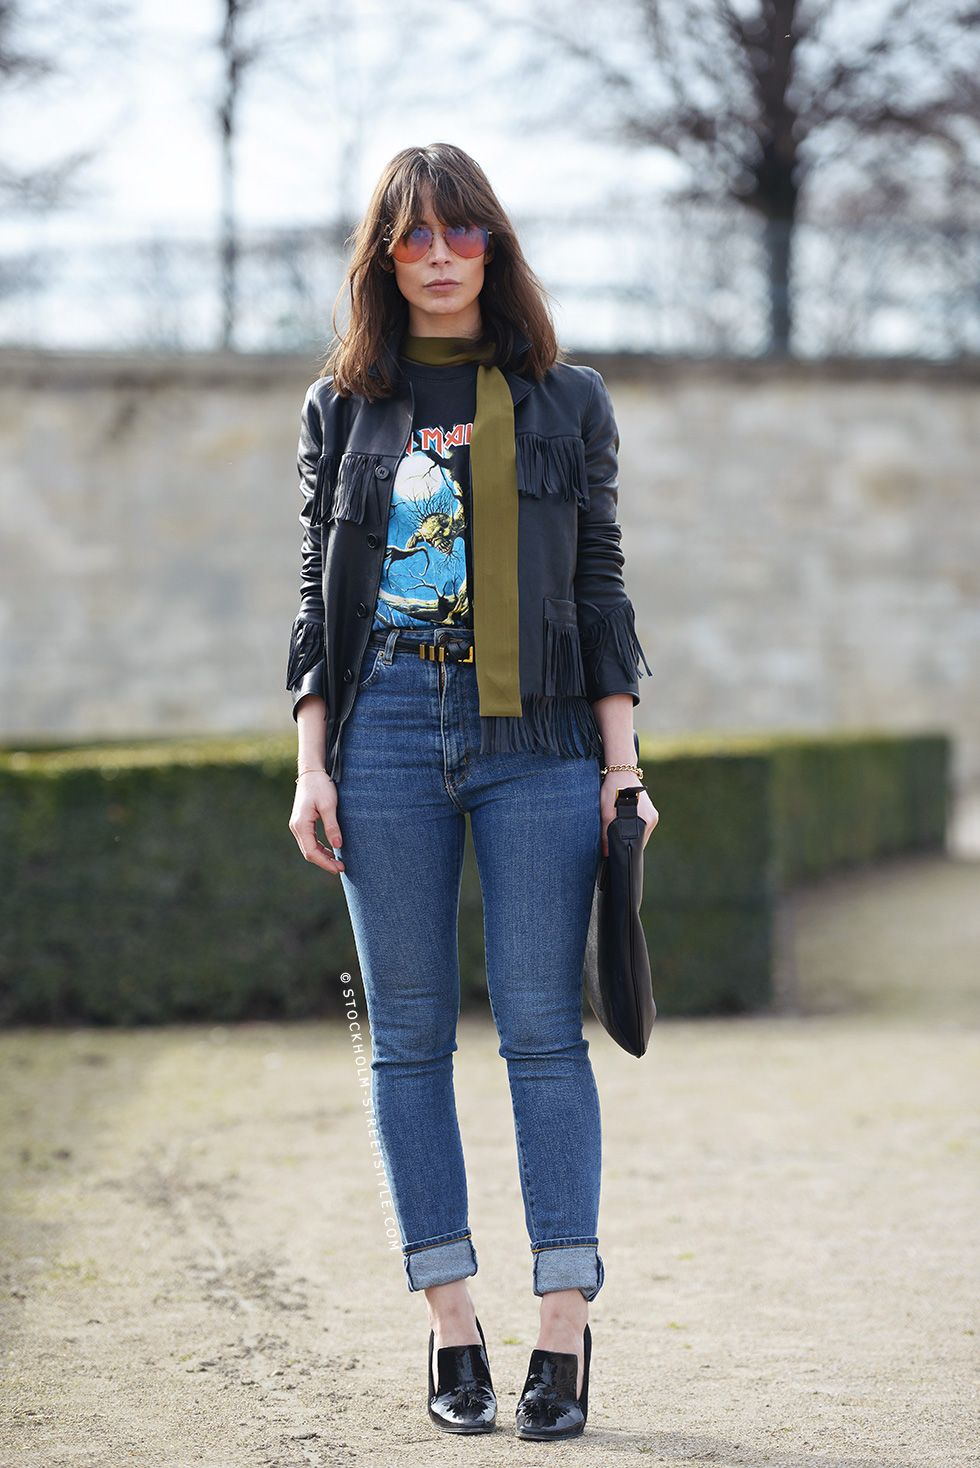 101 Ways to Wear a Leather Jacket | StyleCaster